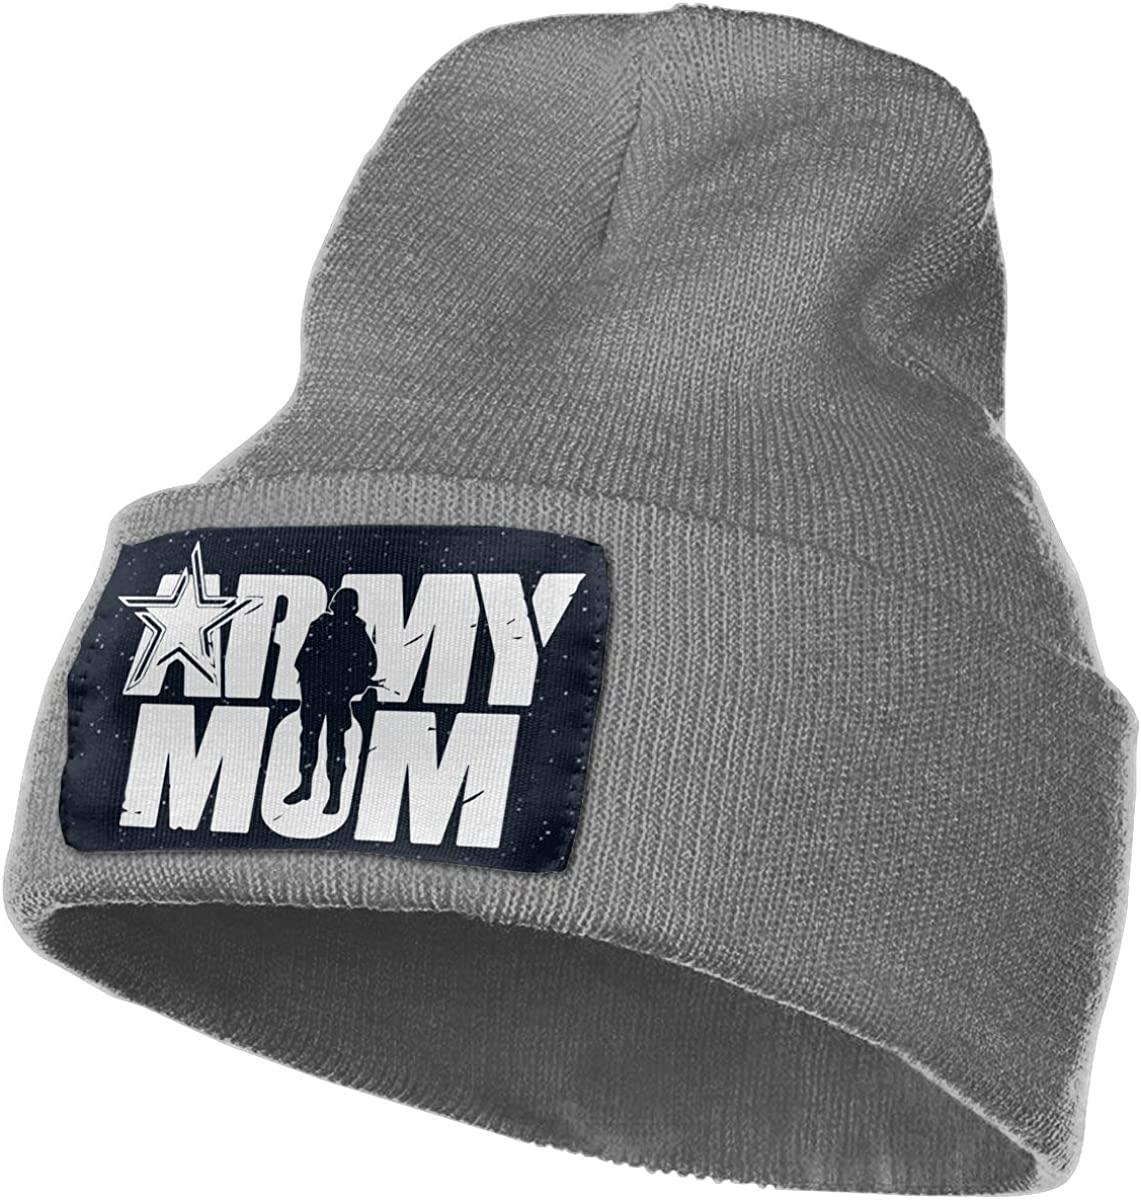 TAOMAP89 Army Mom Women and Men Skull Caps Winter Warm Stretchy Knit Beanie Hats